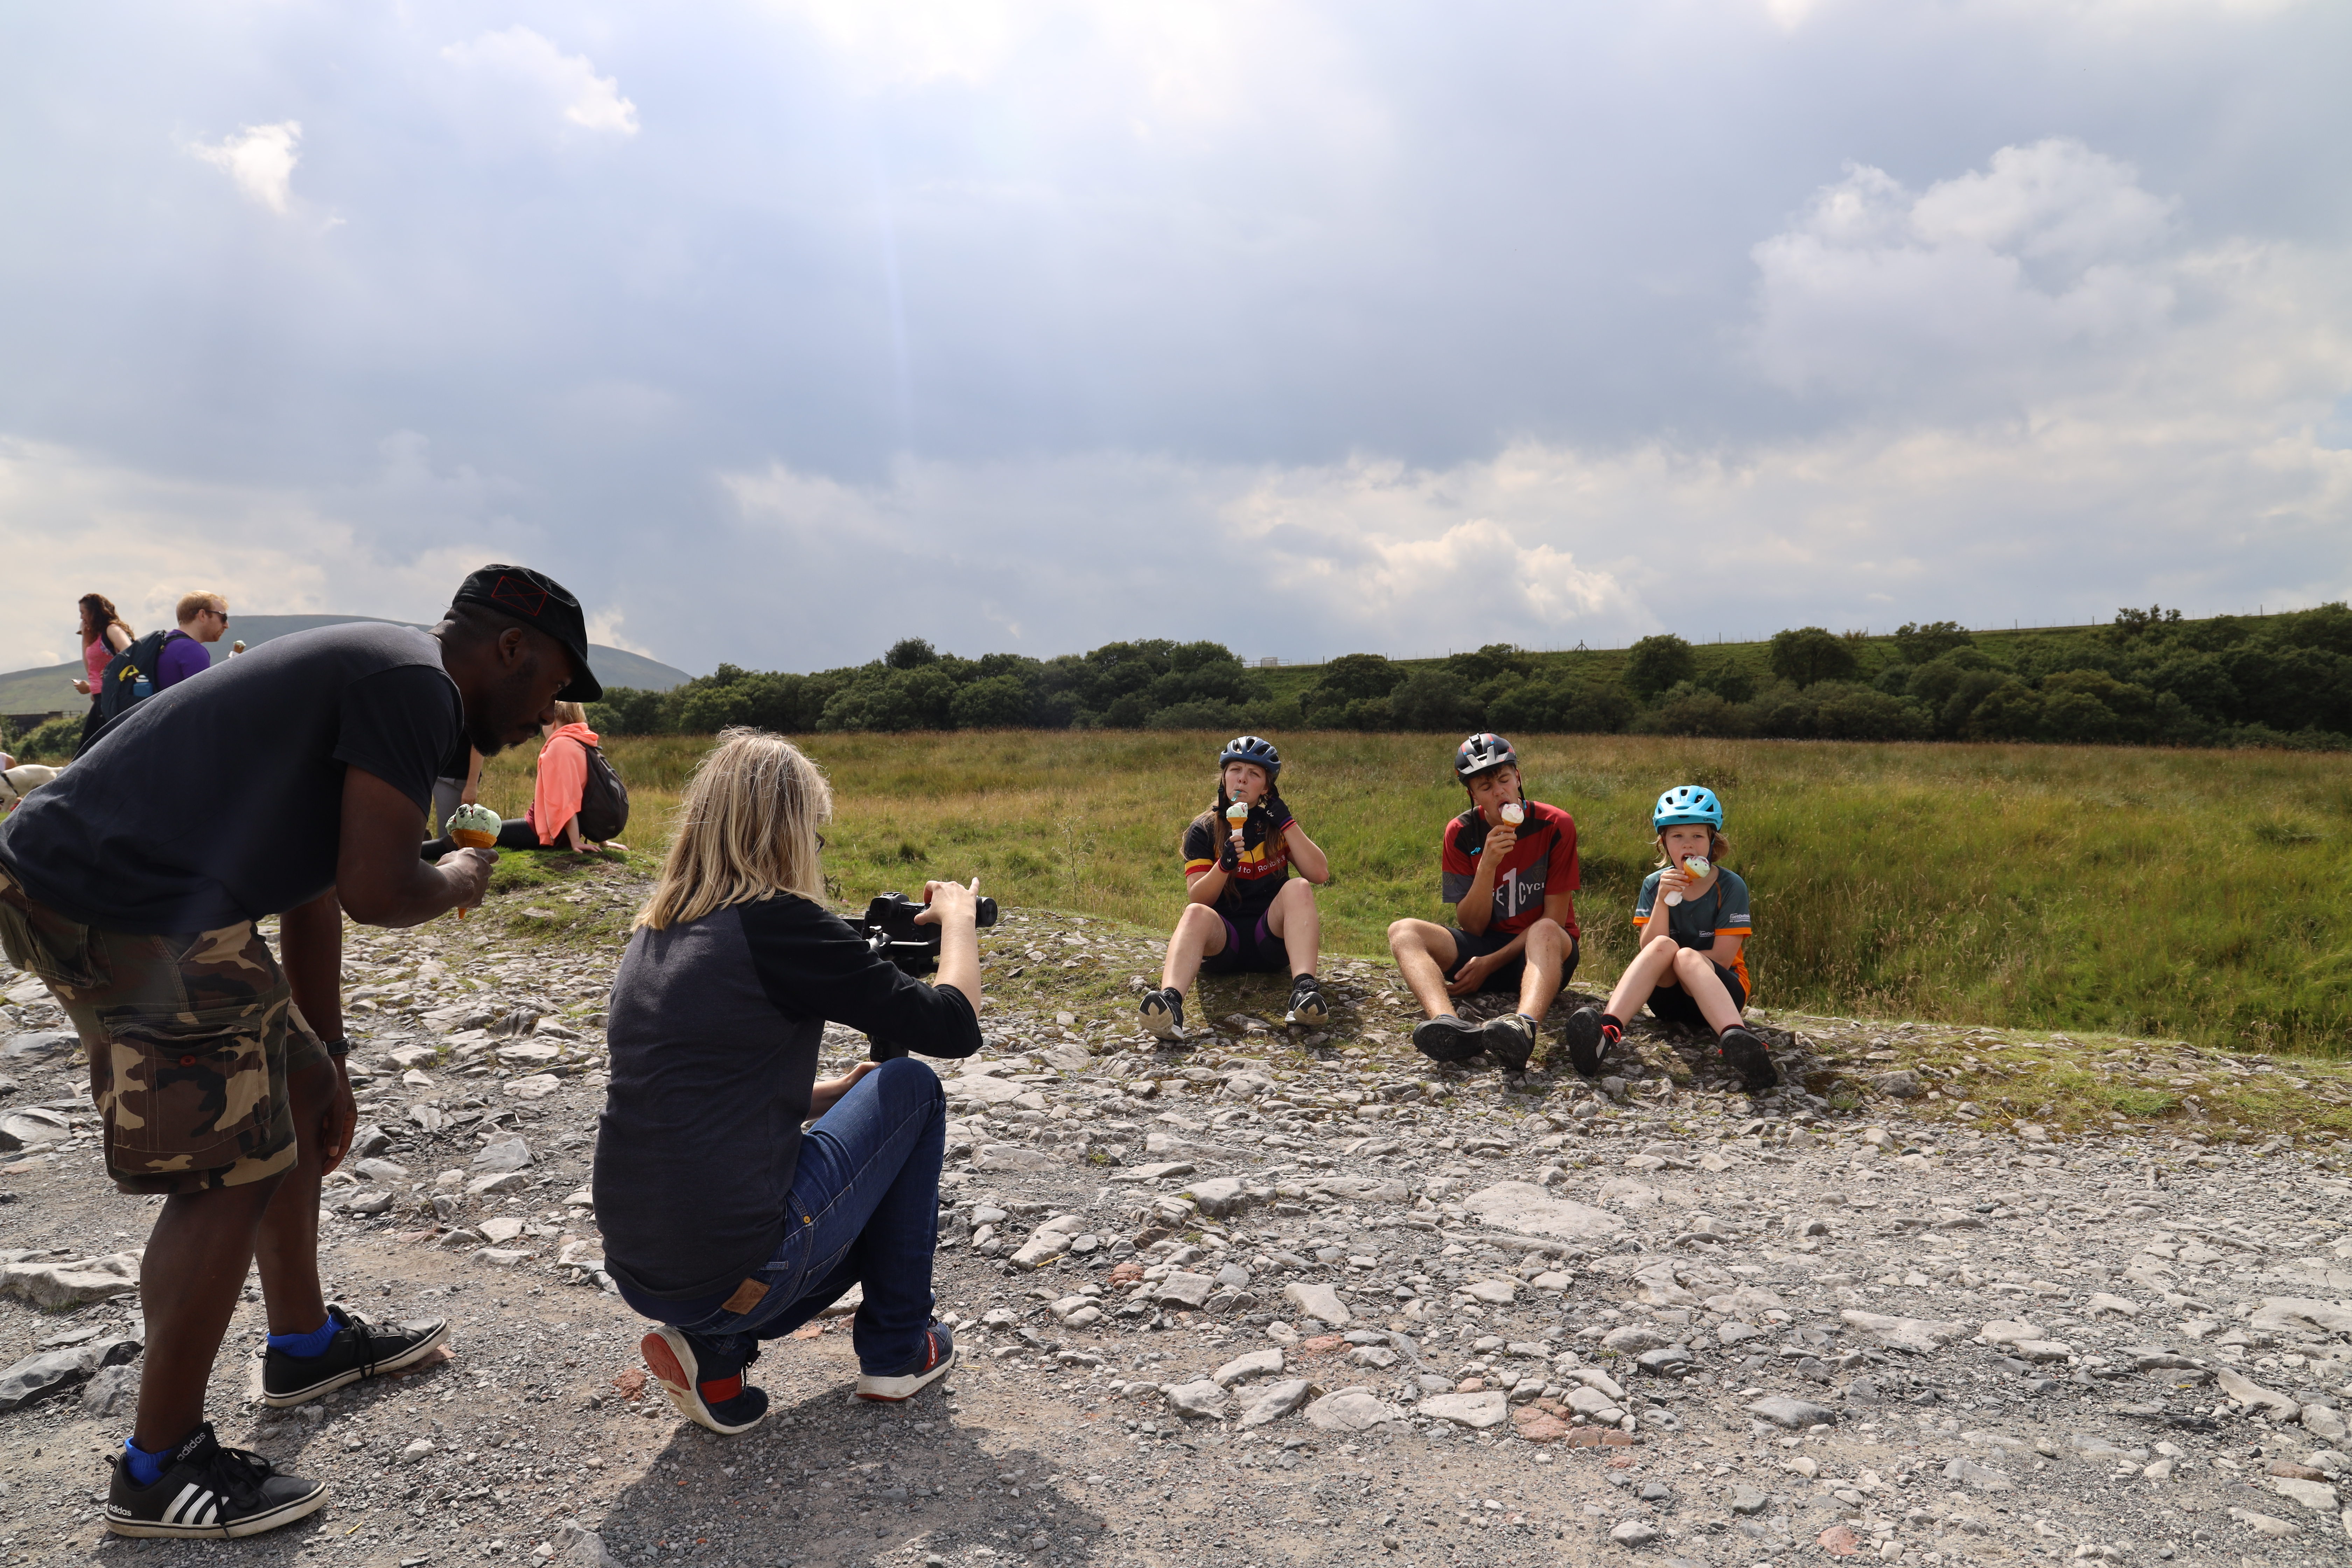 Young cyclists being filmed eating ice creams in the Dales, for the Cycle the Dales promotional video with Pocket Projects